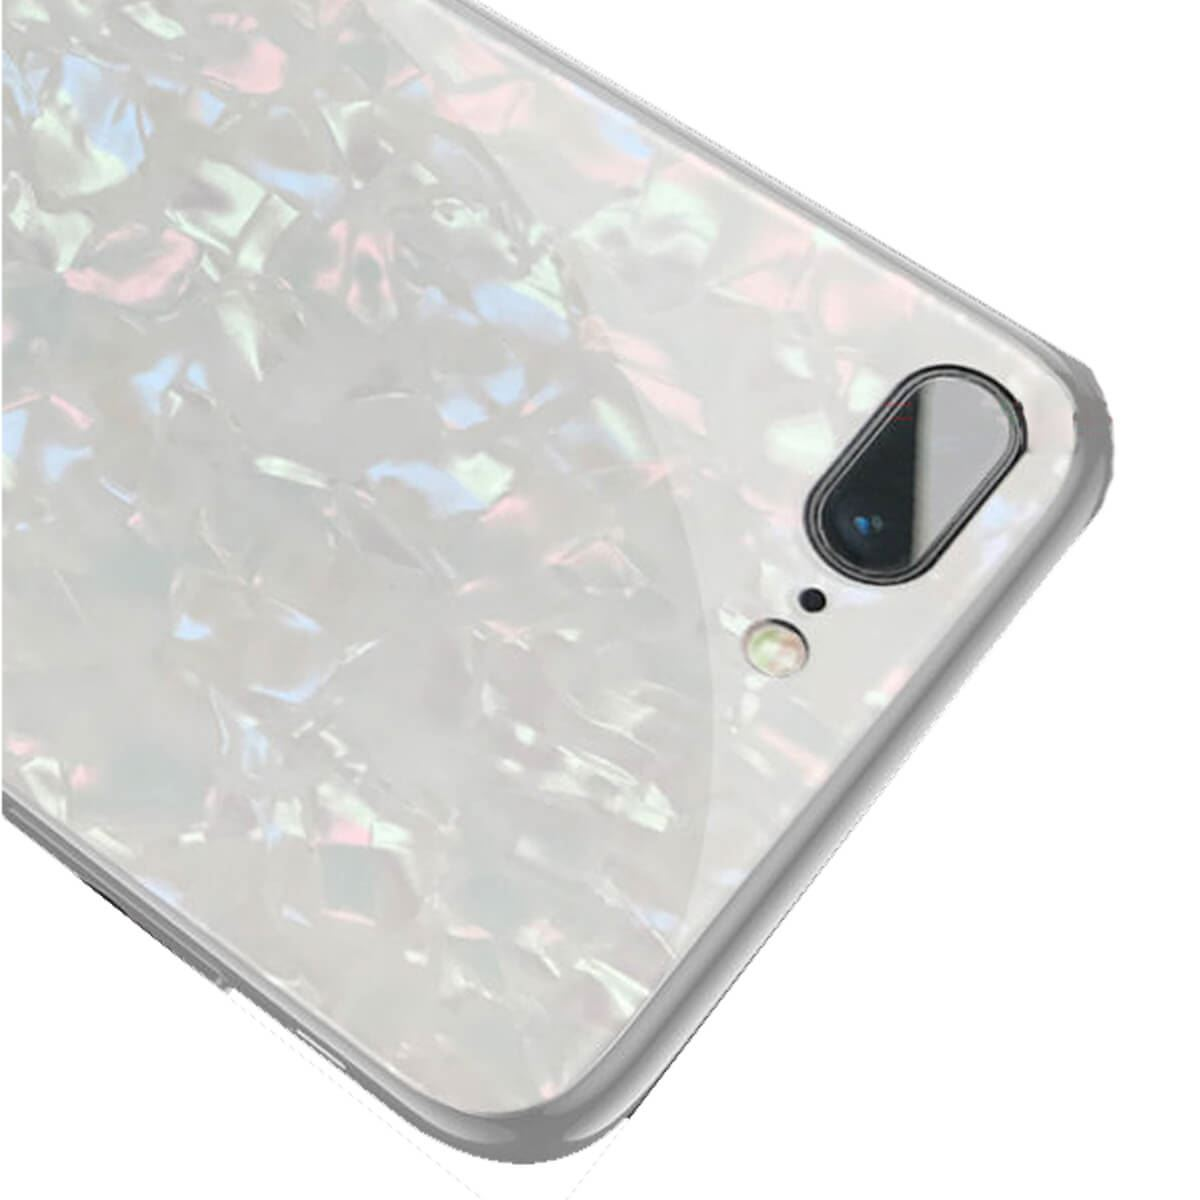 Marble-Tempered-Glass-Case-For-Apple-iPhone-X-XS-XR-Max-10-8-7-6s-6-Luxury-Cover thumbnail 6